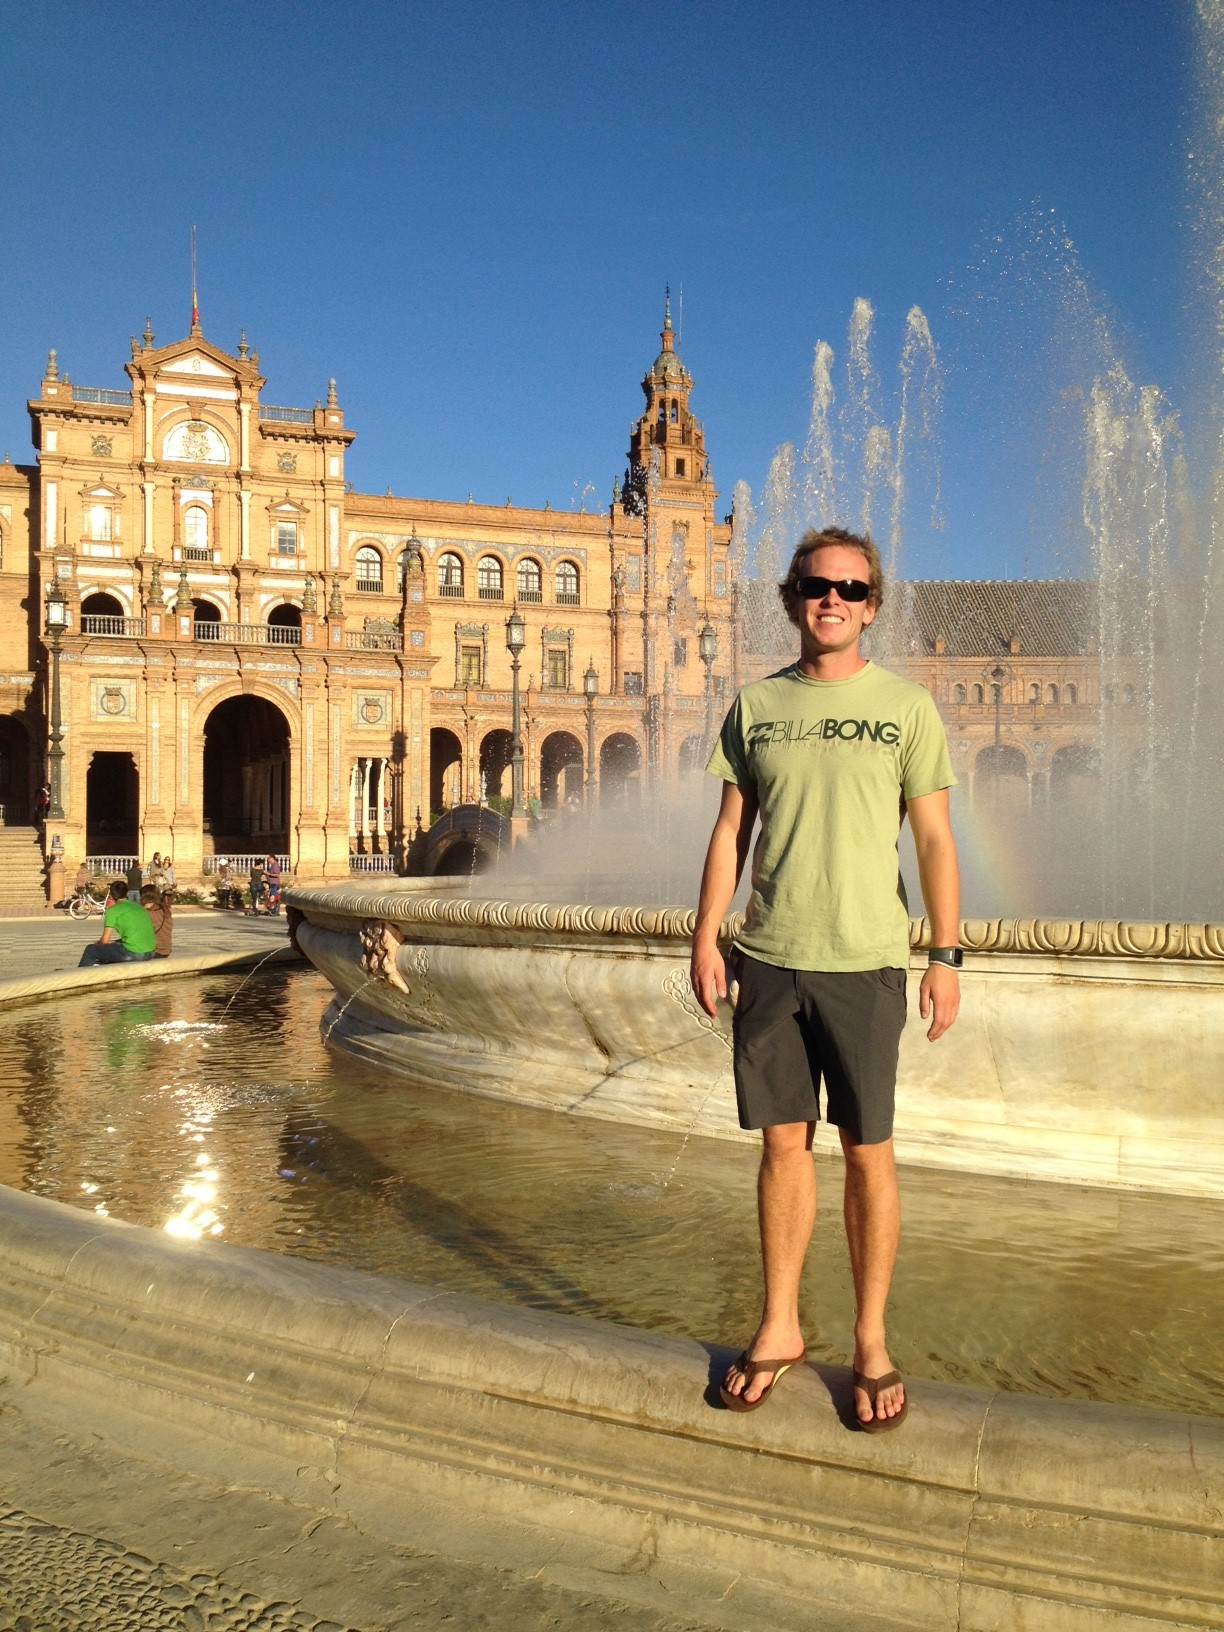 Will in Seville